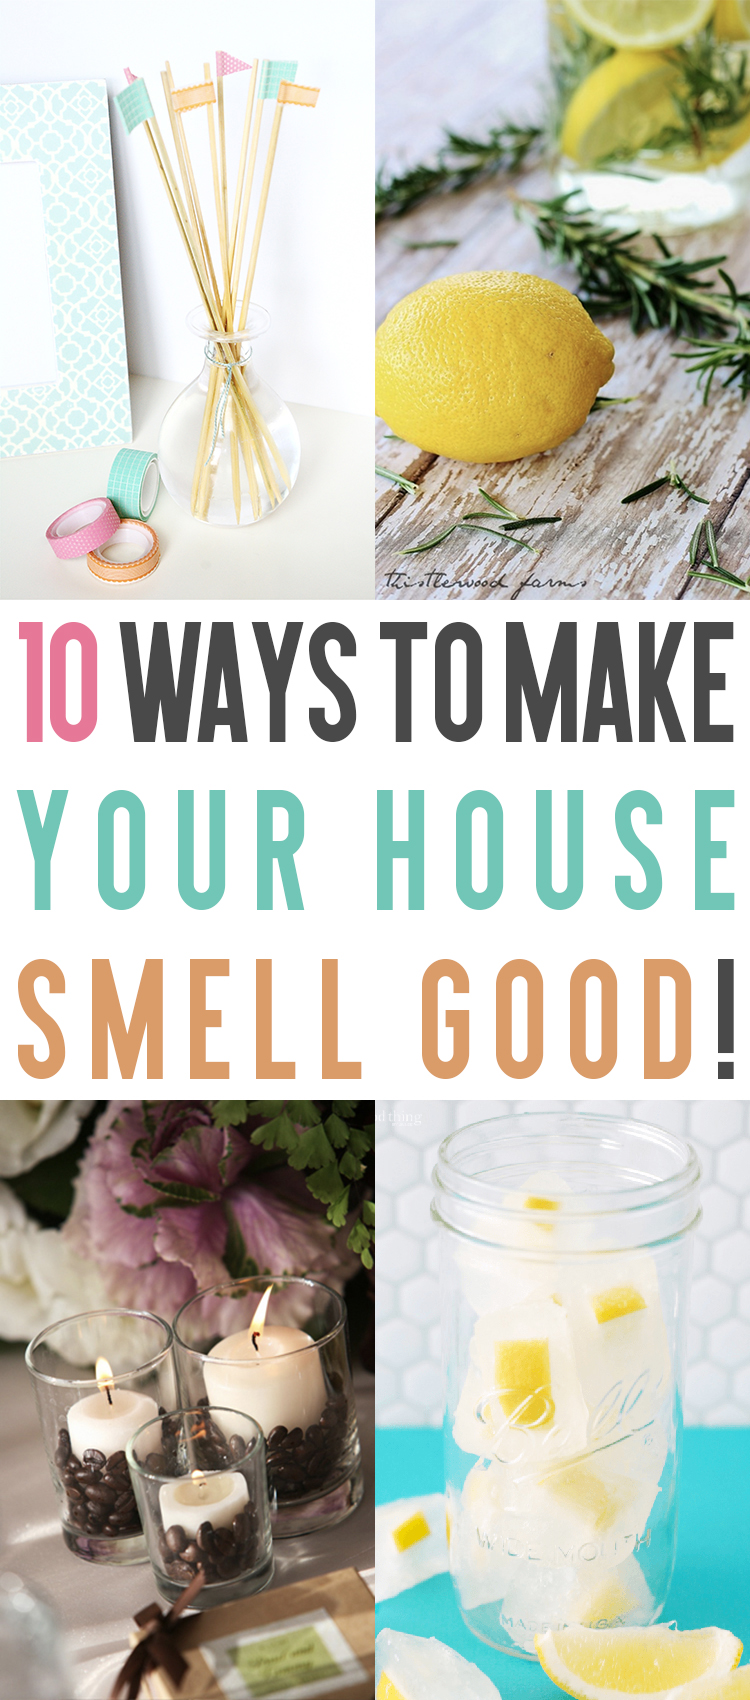 Making Your House Smell Good With Making Your House Smell